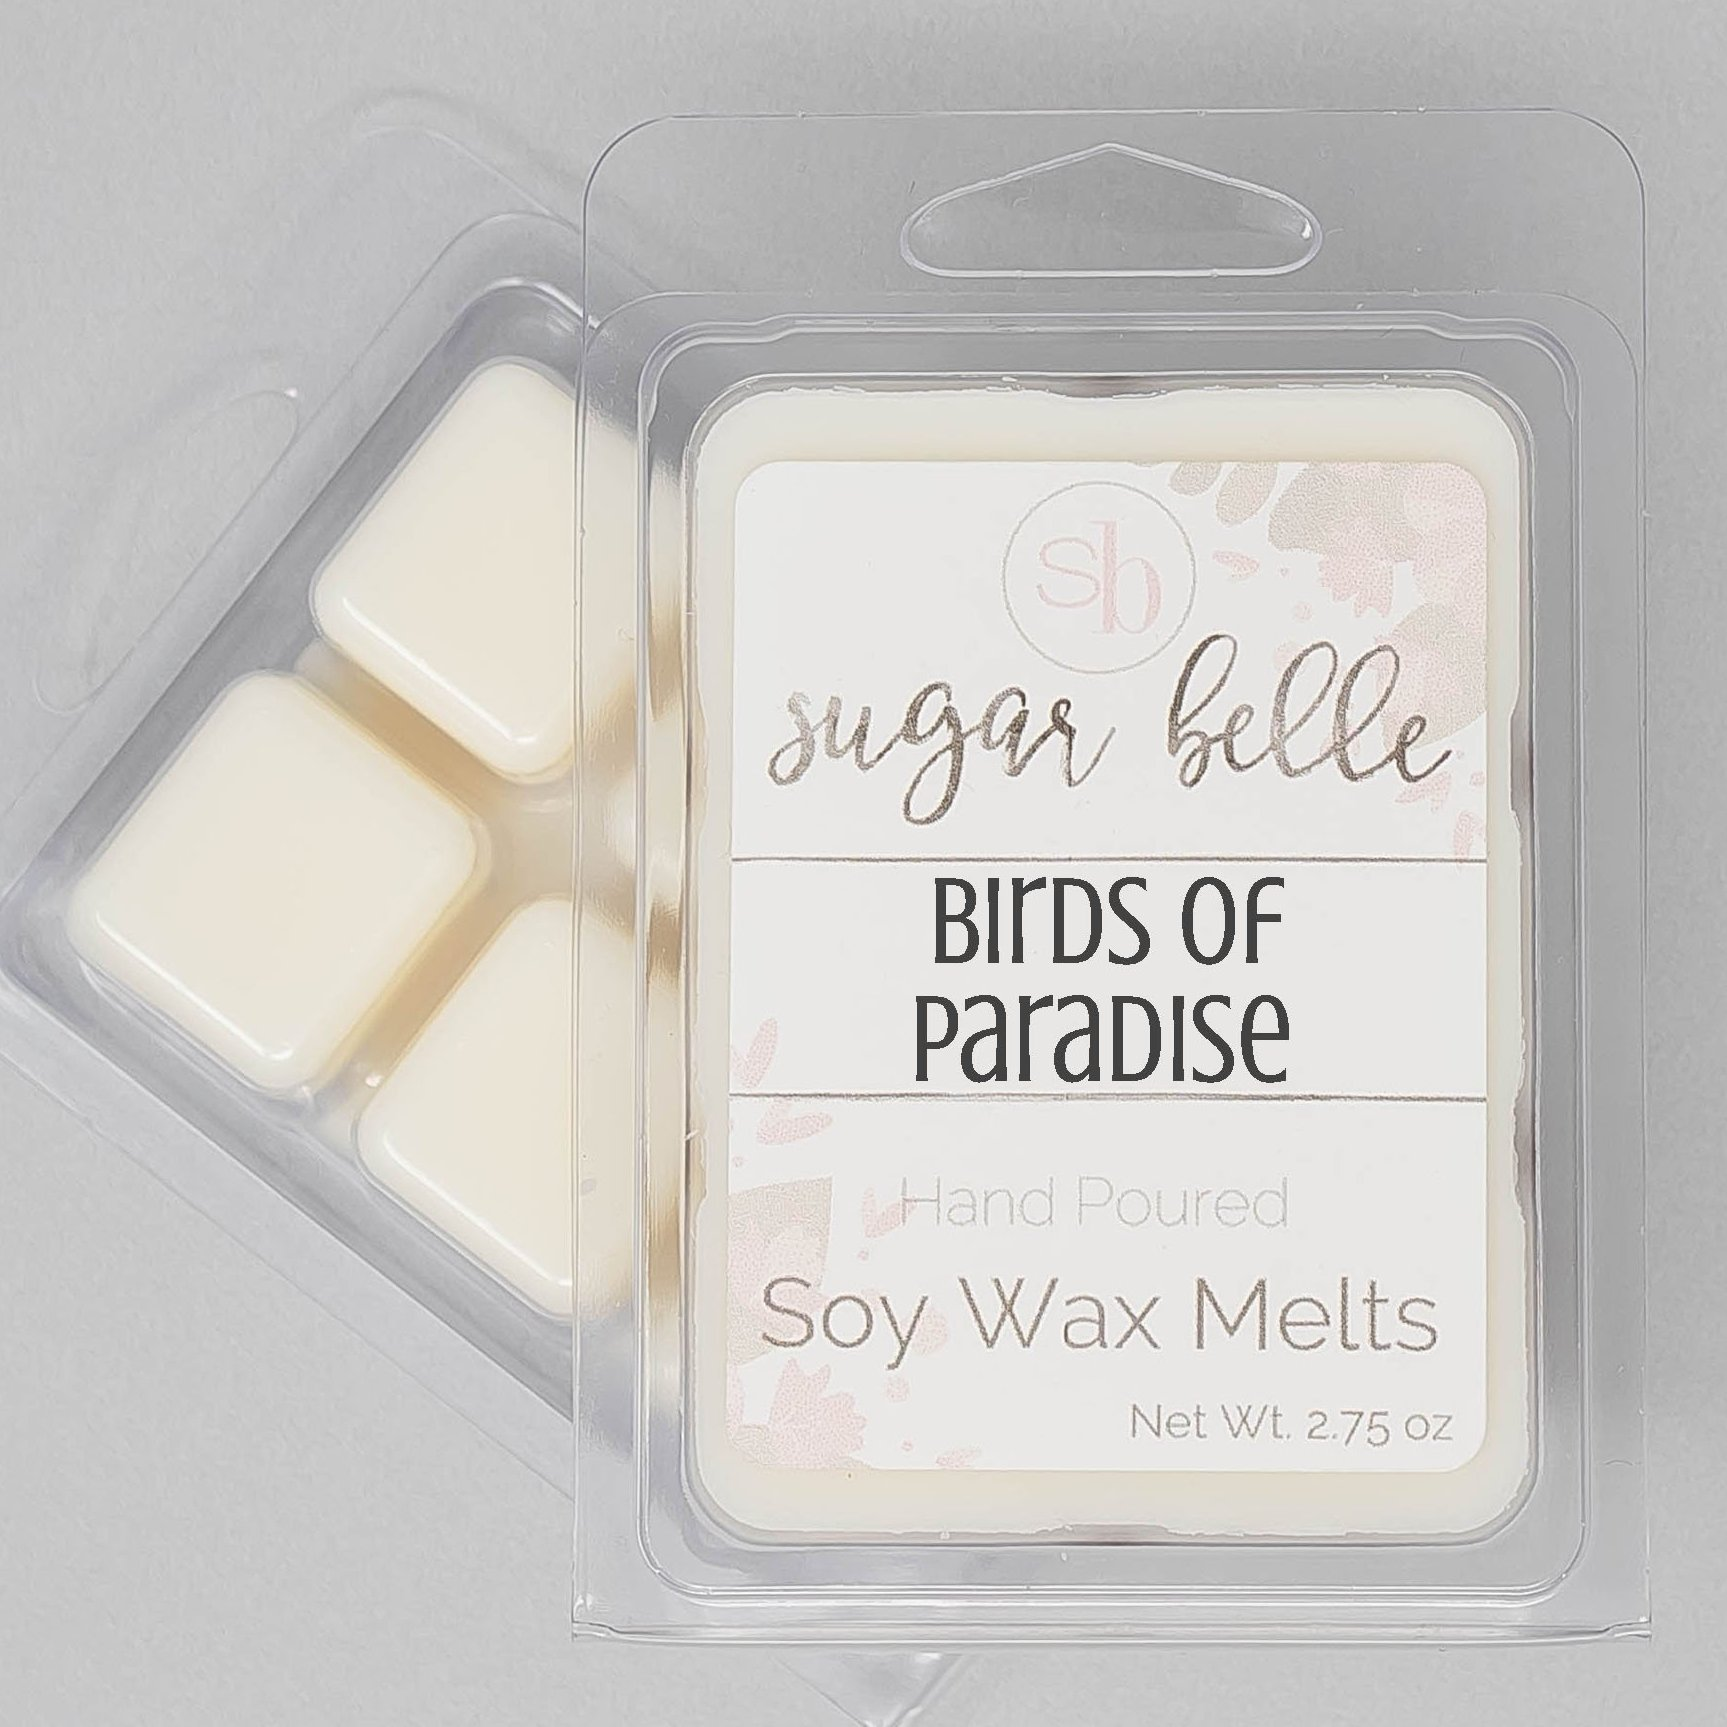 Heavily Scented Handmade Soy Clamshell Wax Melts Tarts BIRDS OF PARADISE